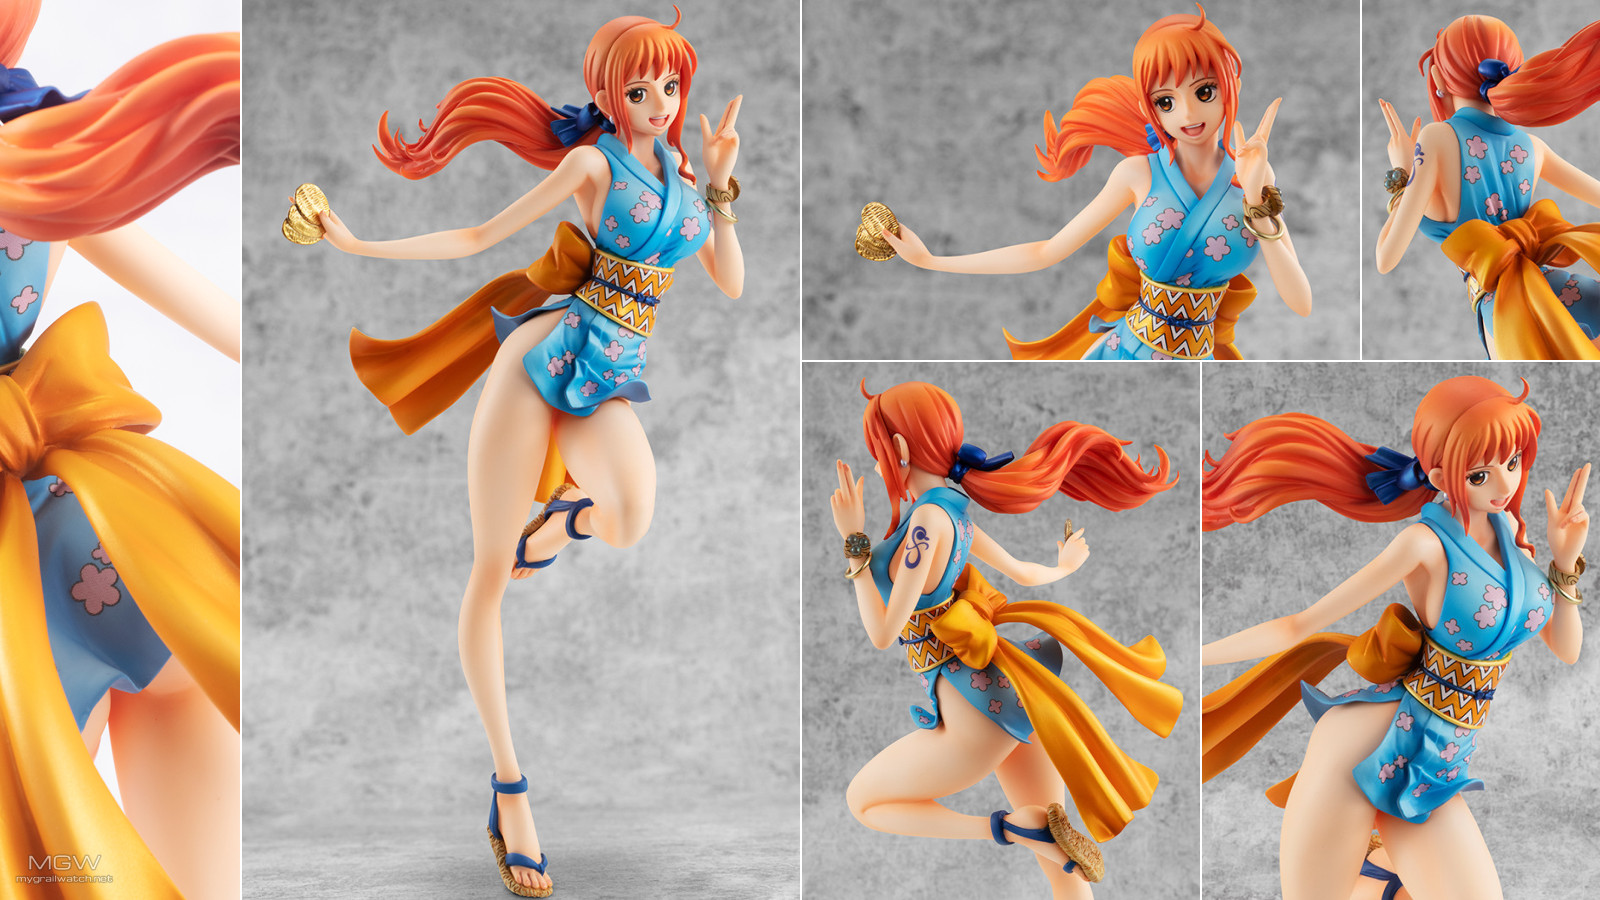 Portrait.Of .Pirates Novice Kunoichi O nami by MegaHouse from One Piece